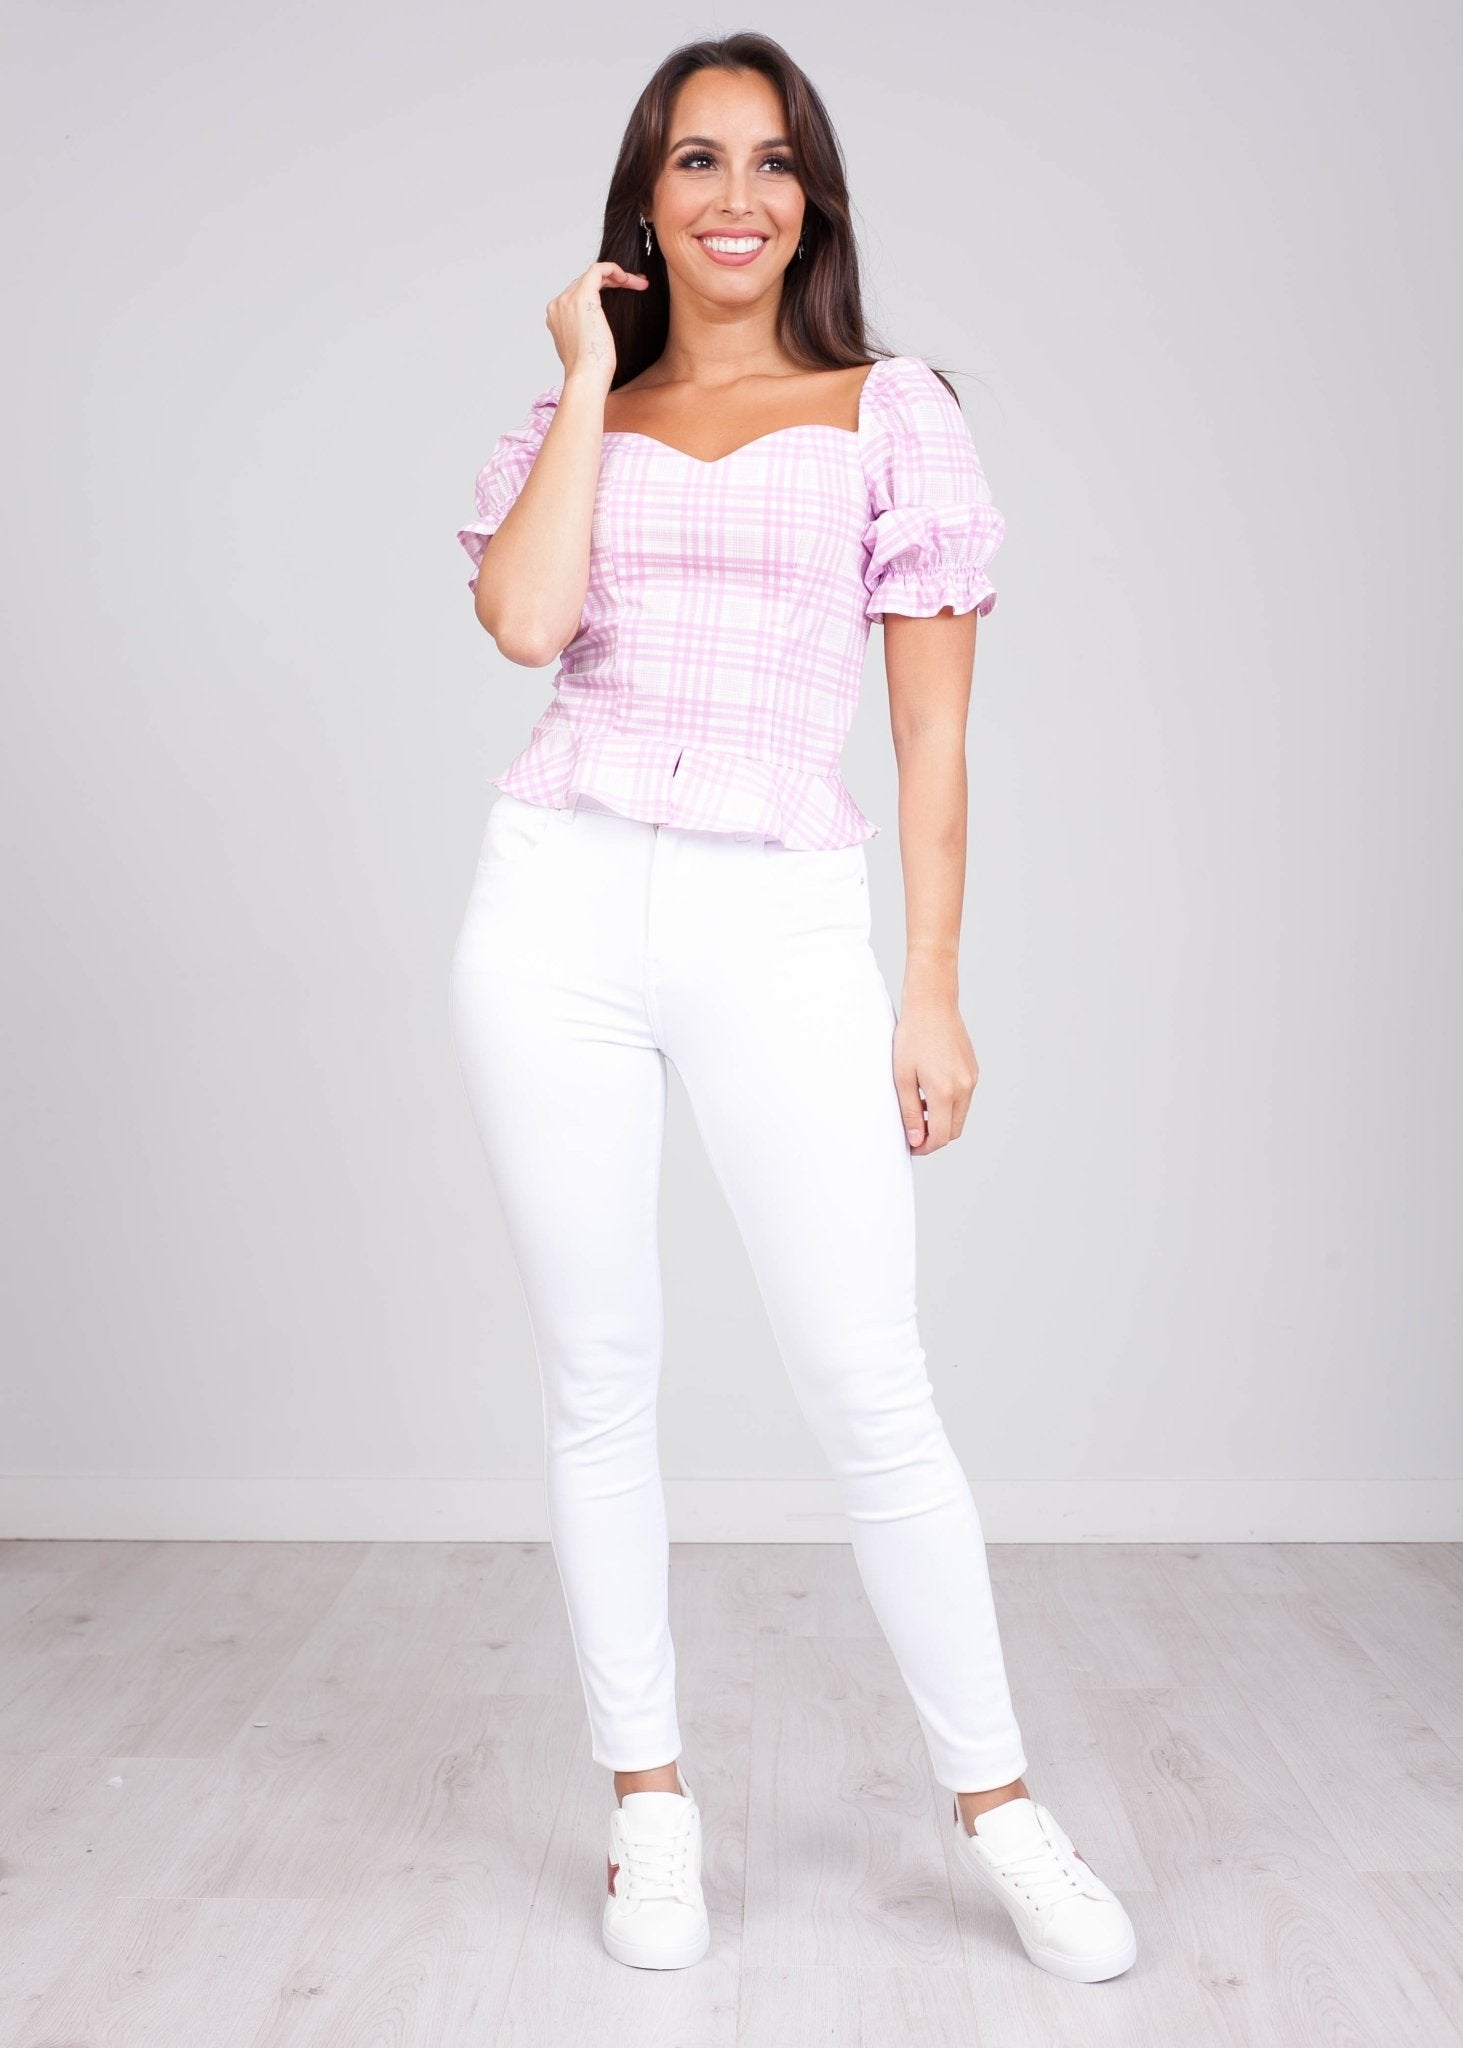 Charlee Pink Bardot Top - The Walk in Wardrobe